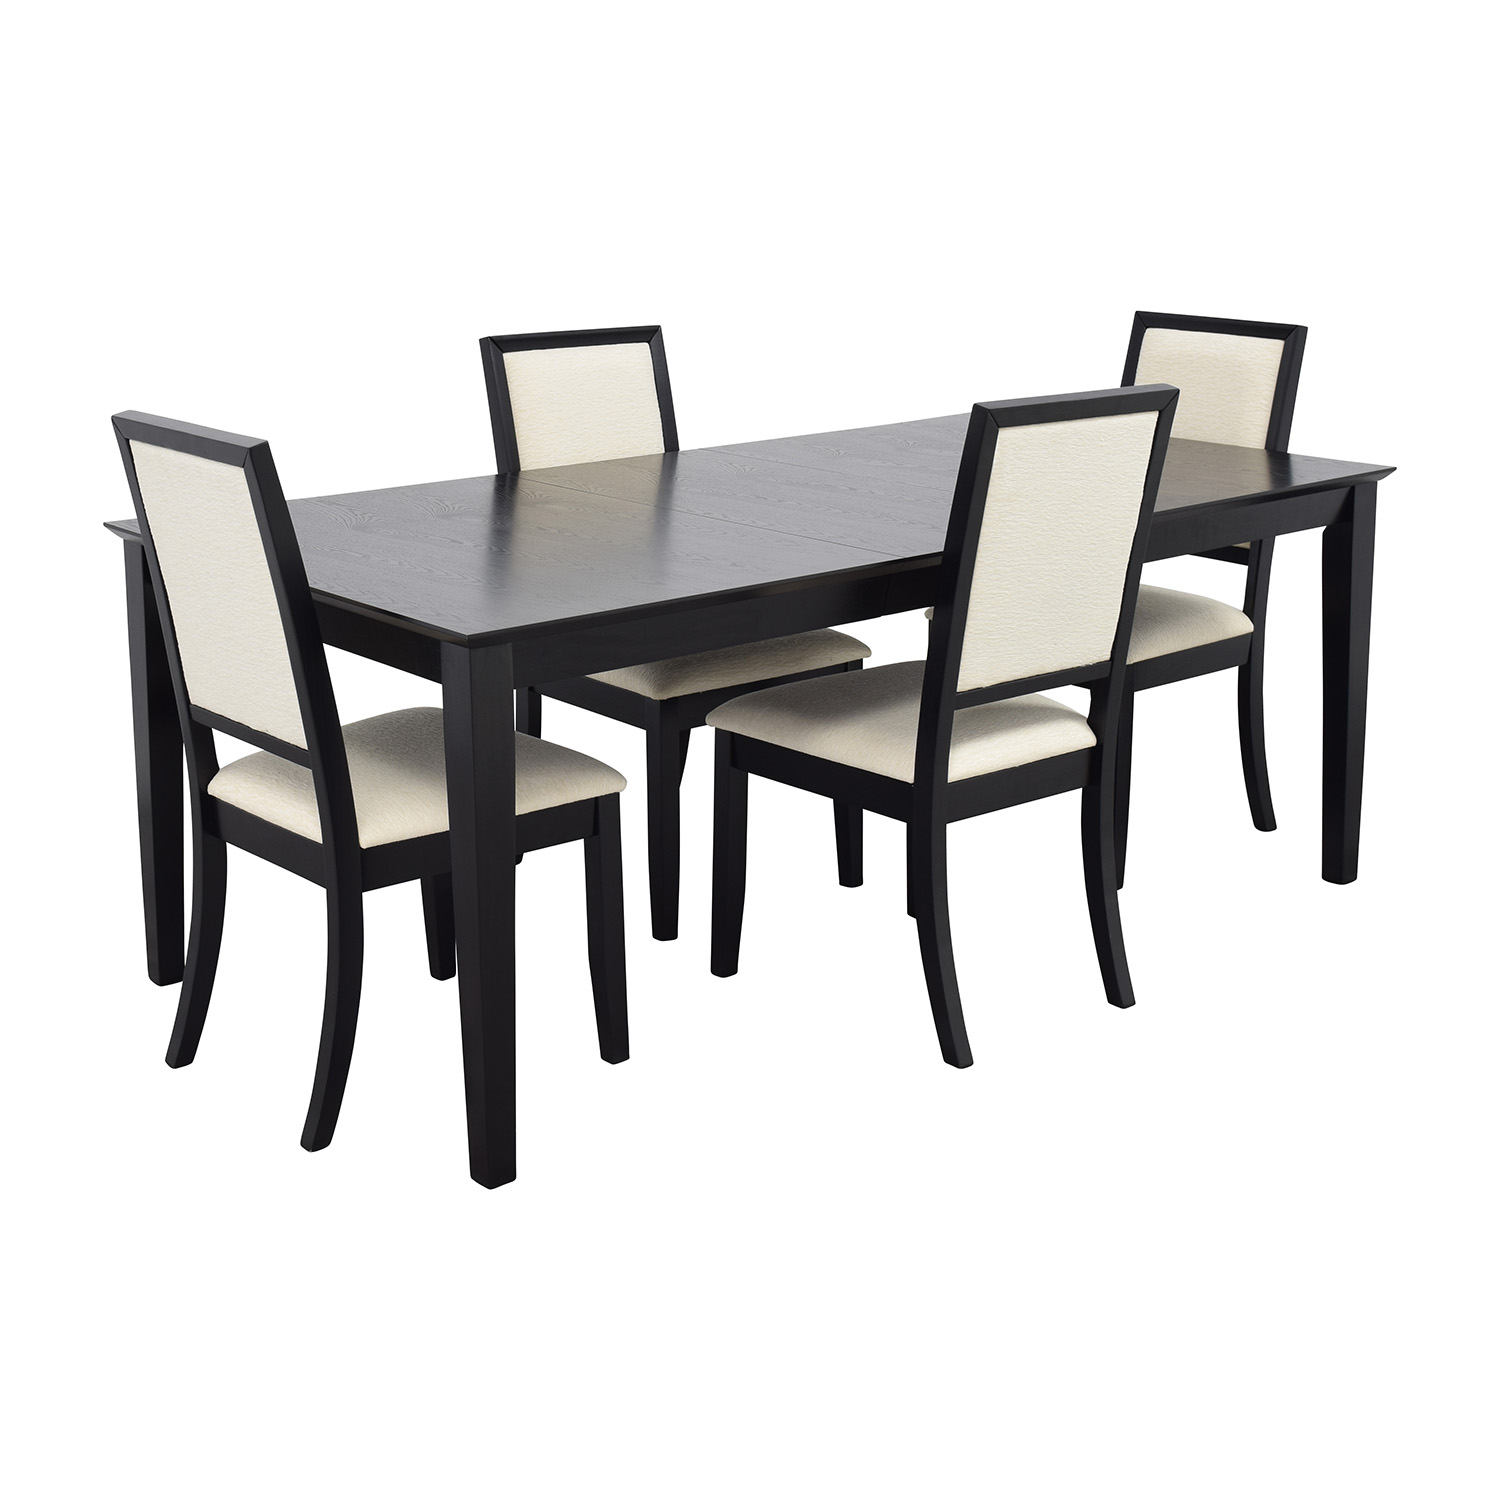 Black Dining Table And Chairs 72 Off Harlem Furniture Harlem Furniture Black Dining